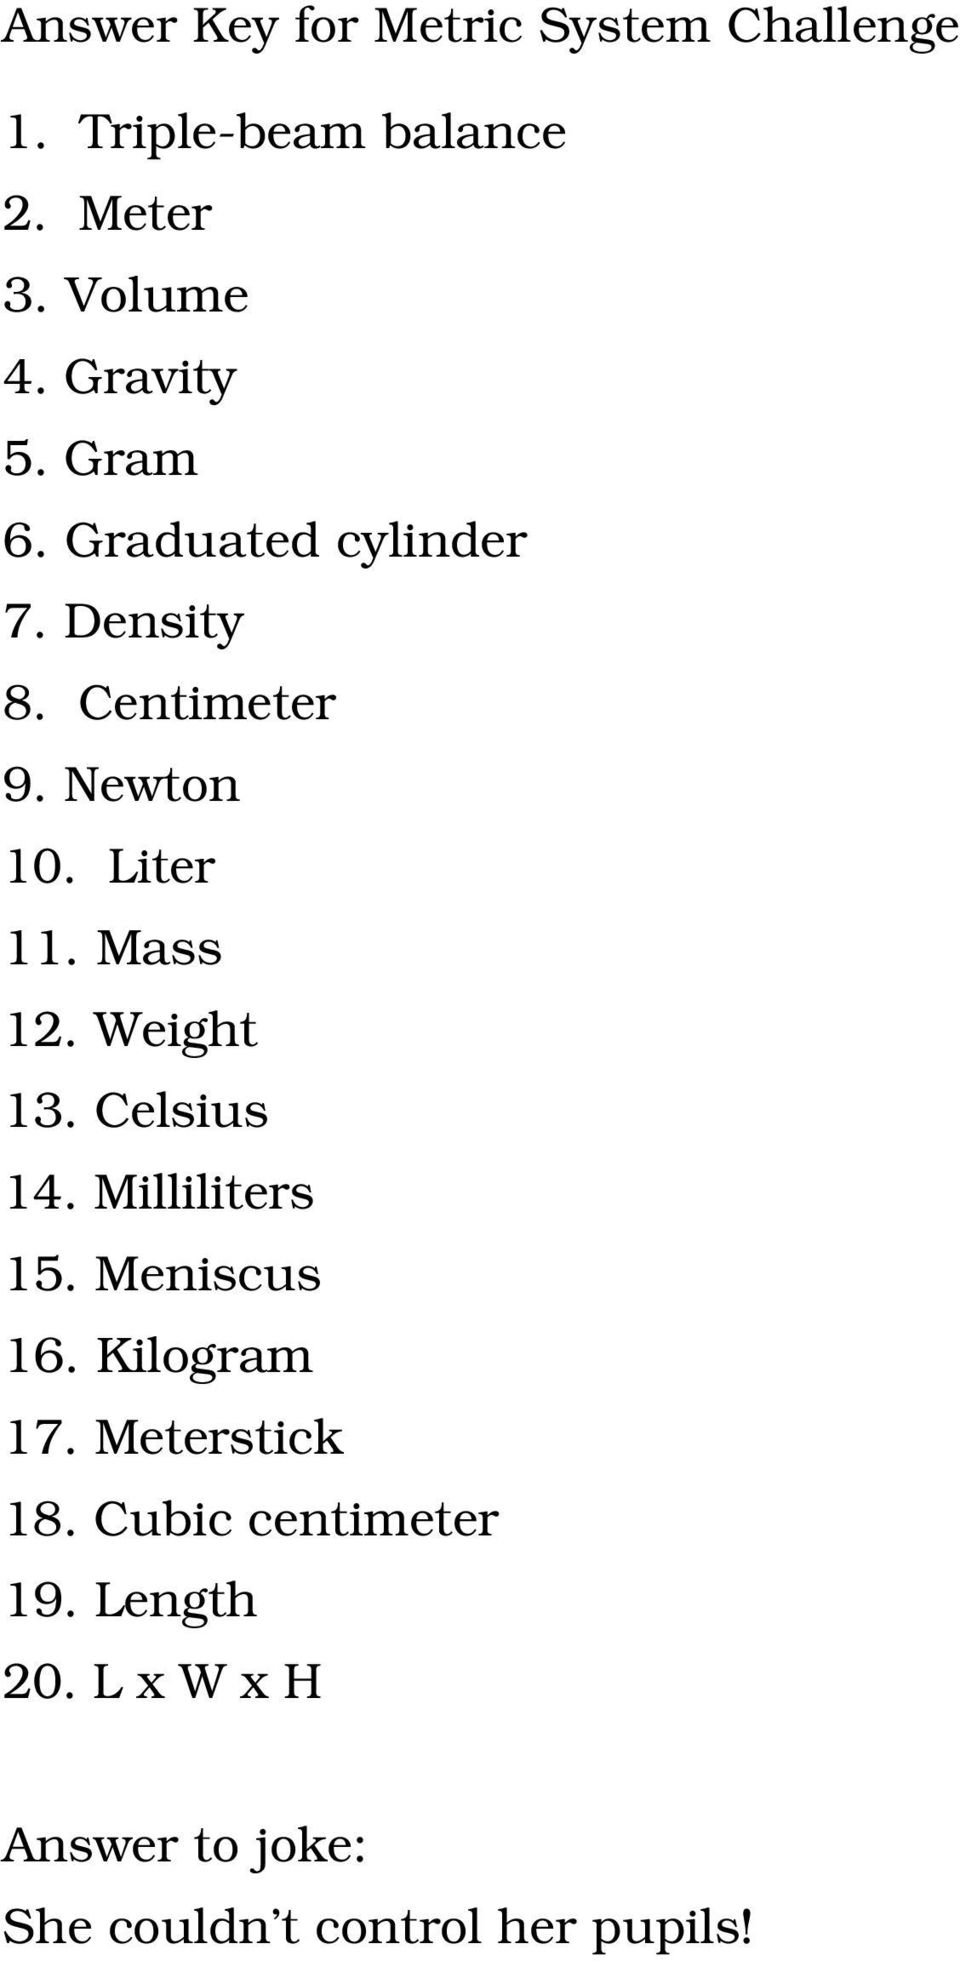 Mass 12. Weight 13. Celsius 14. Milliliters 15. Meniscus 16. Kilogram 17. Meterstick 18.